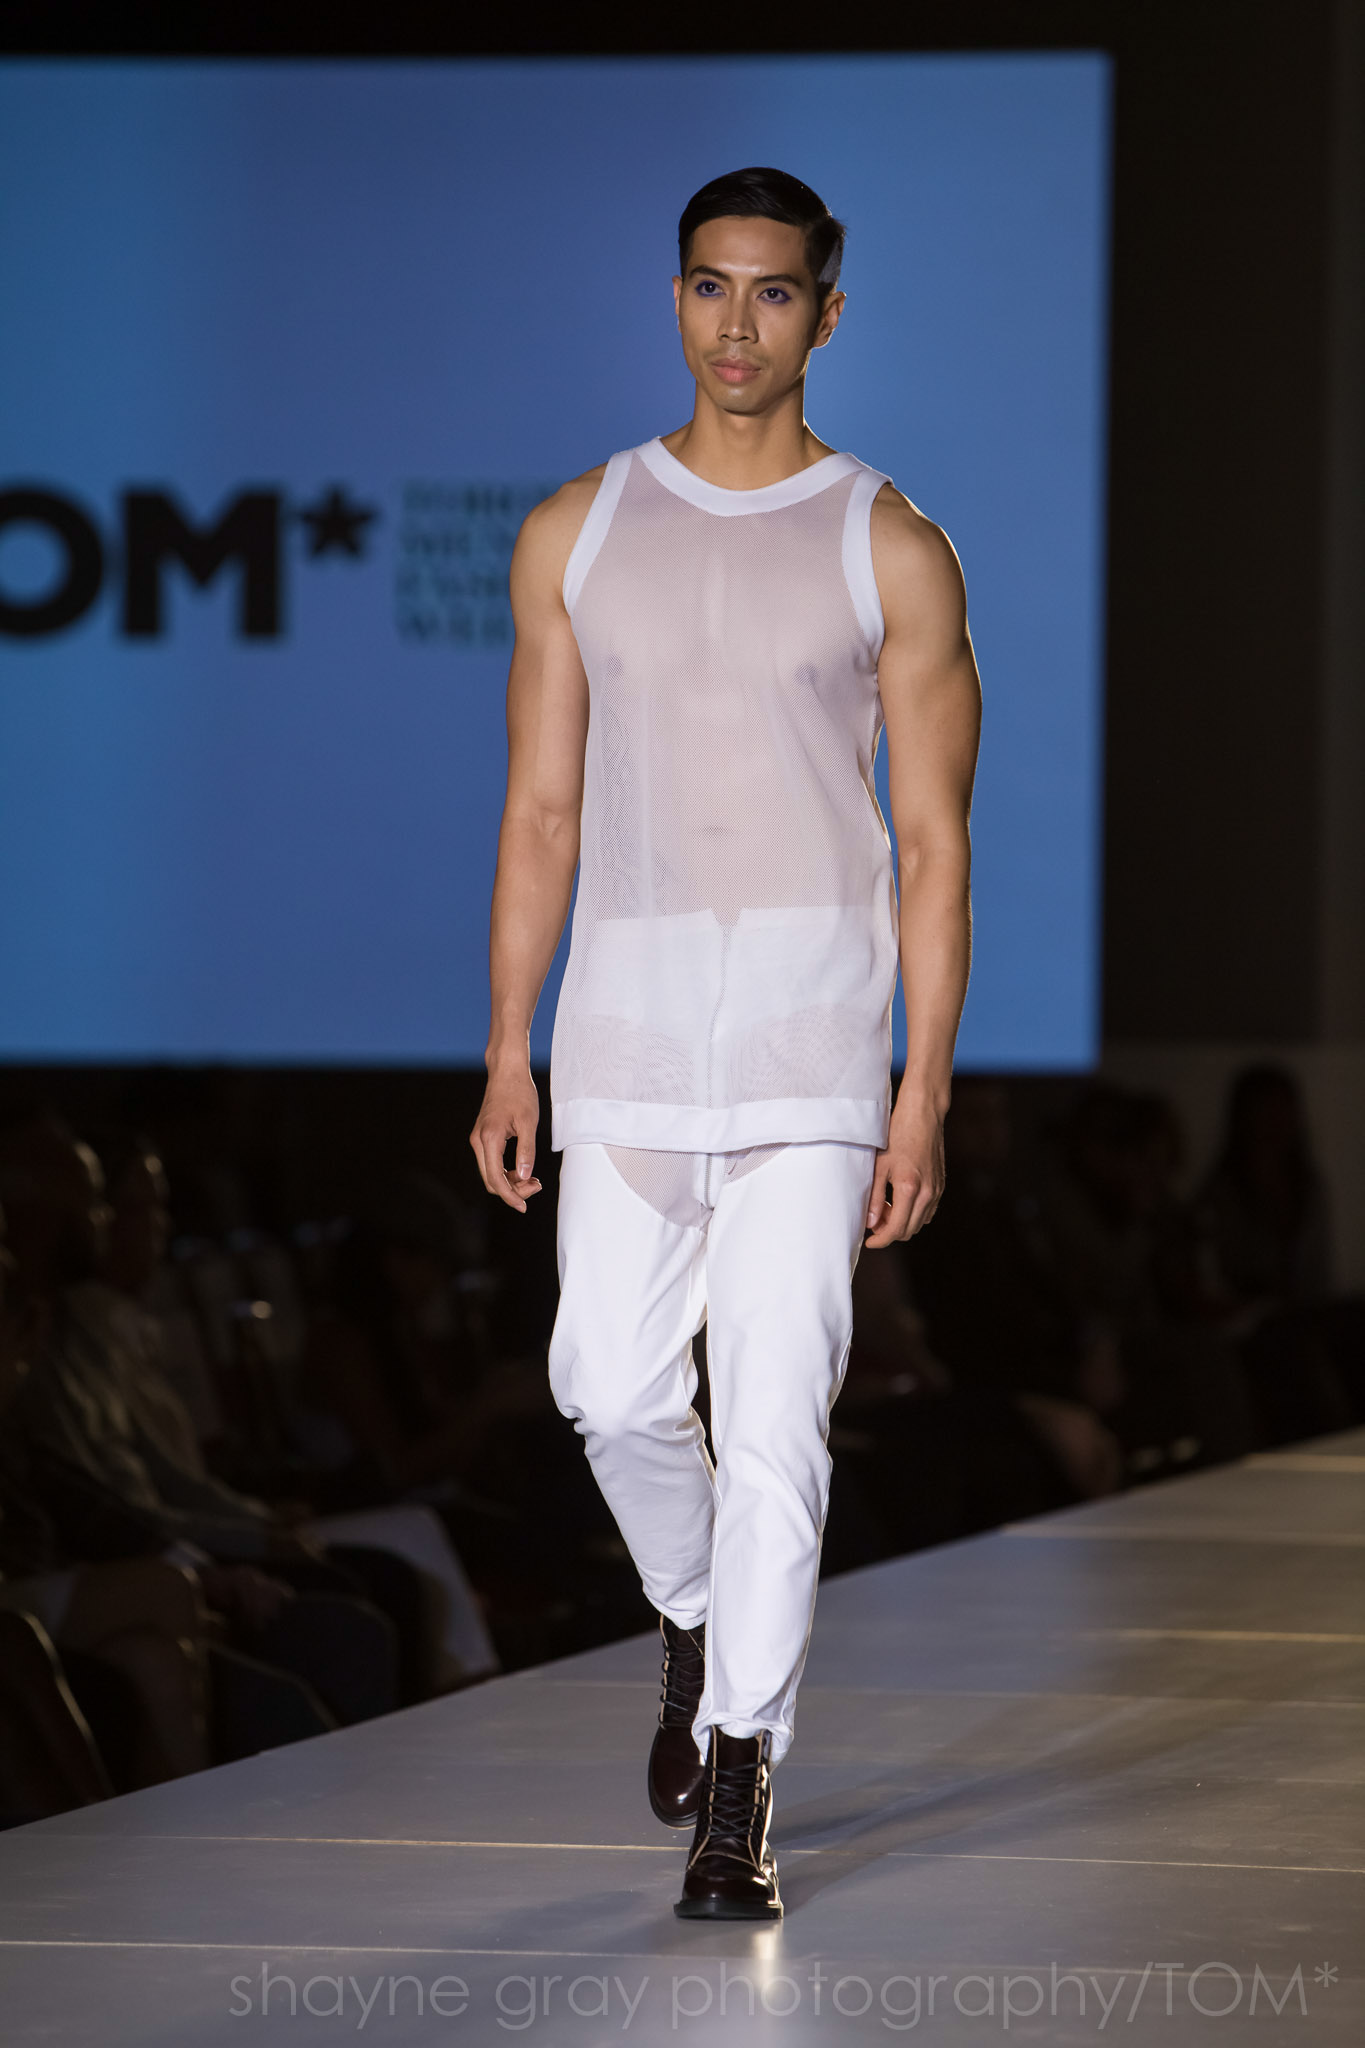 Shayne-Gray-Toronto-men's-fashion_week-TOM-diodati-6137.jpg